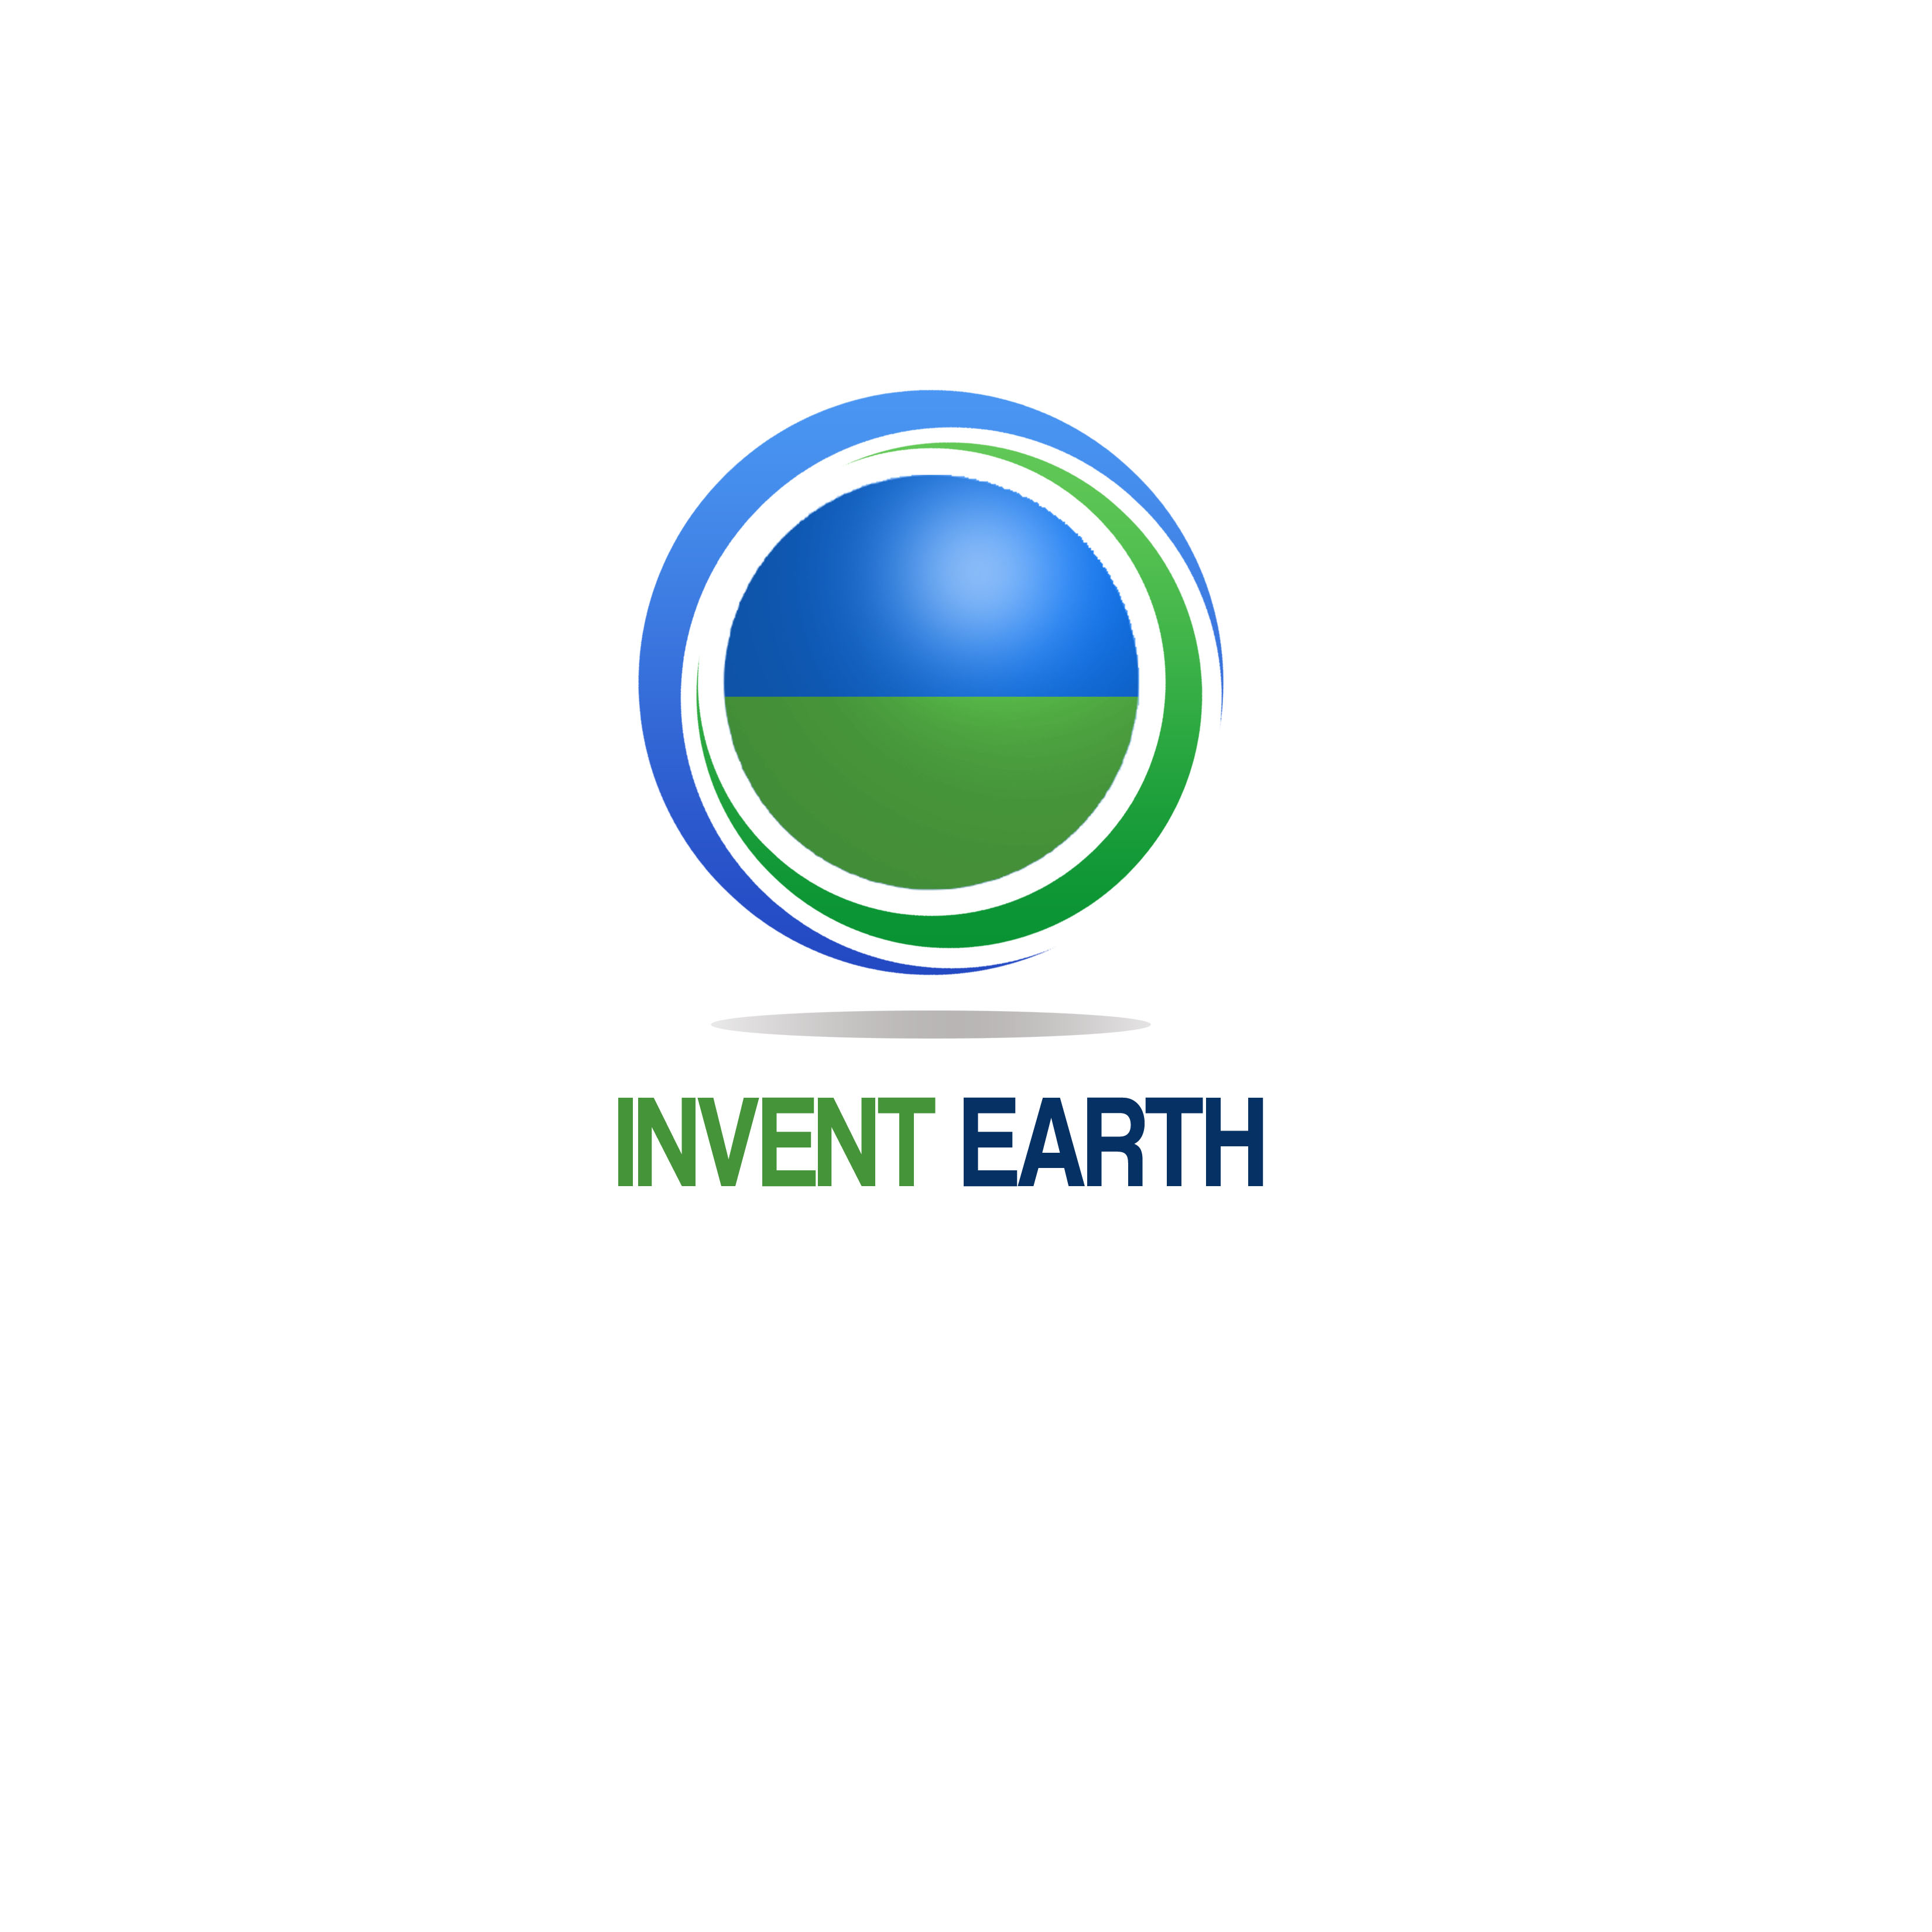 Logo Design by Allan Esclamado - Entry No. 98 in the Logo Design Contest Artistic Logo Design for Invent Earth.